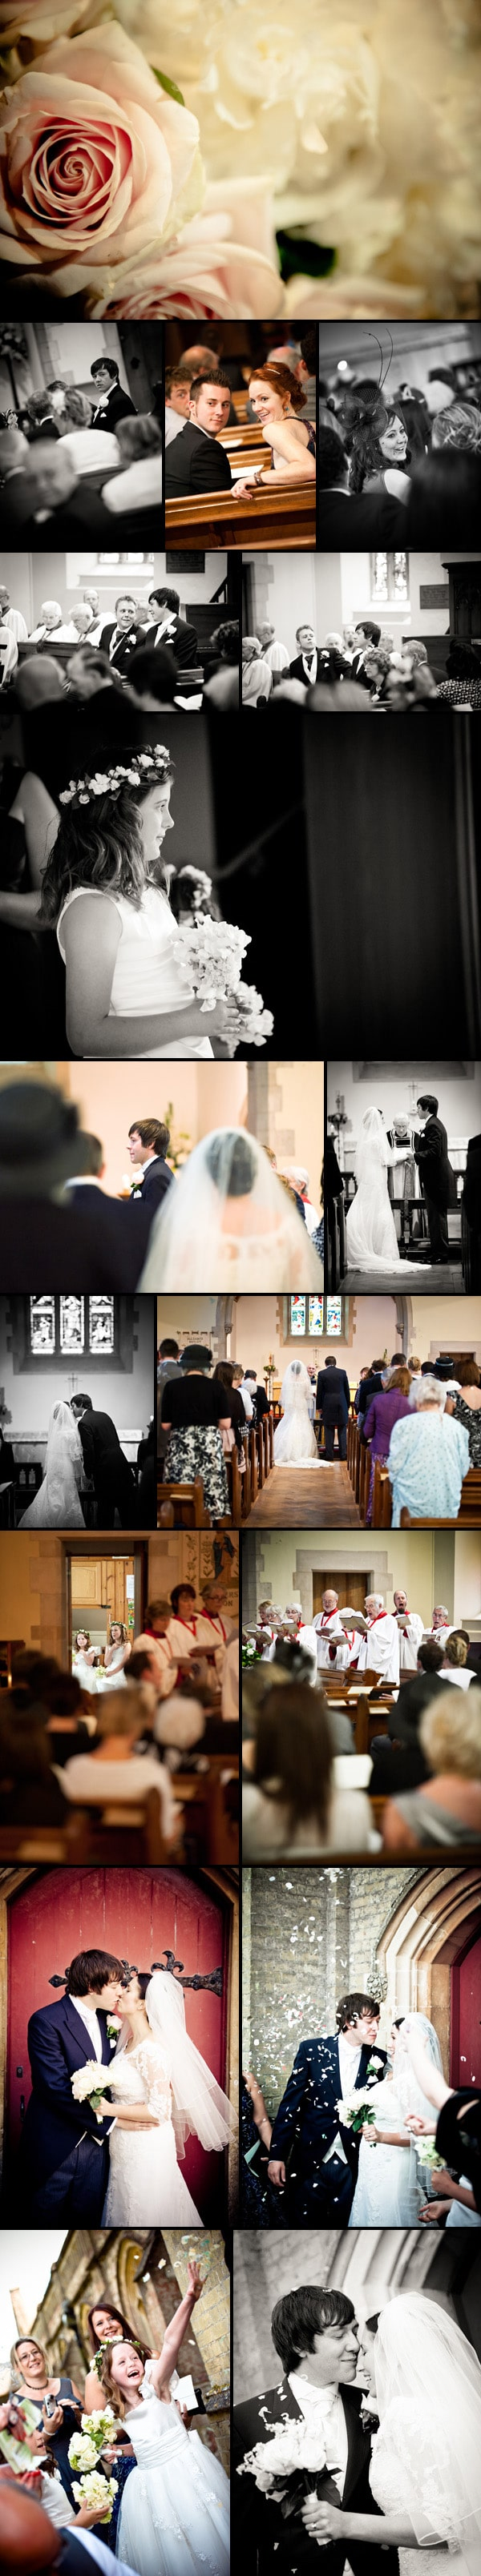 Hampshire wedding photographer - Hill Place - Sillick Photography